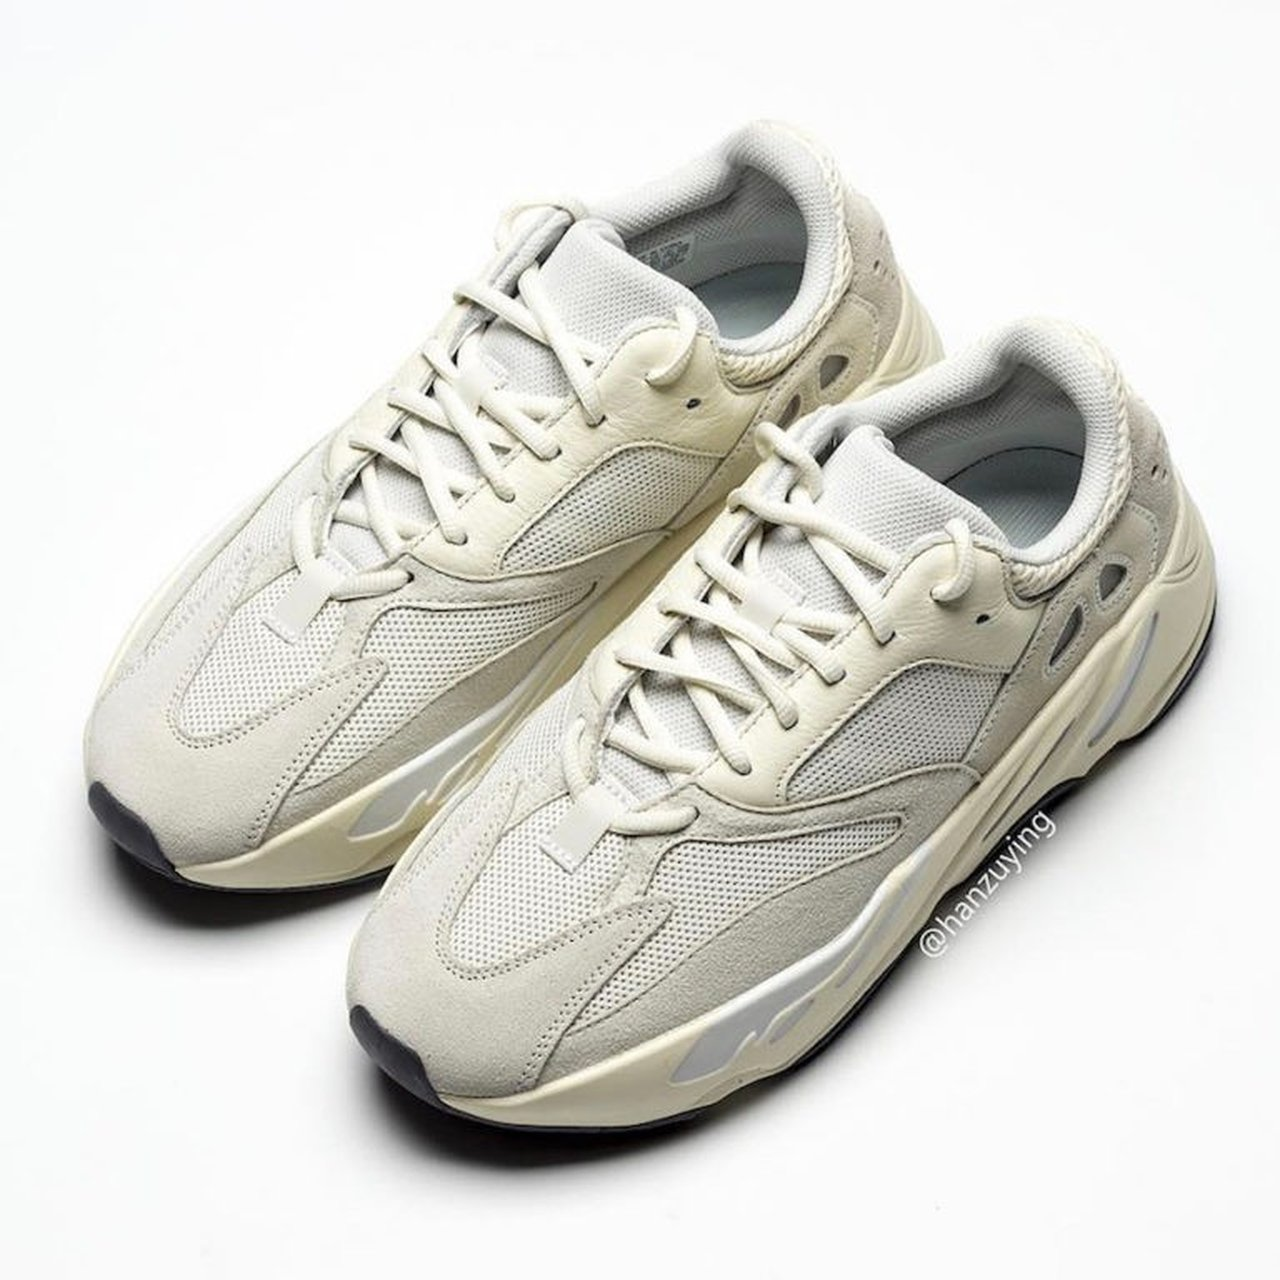 c633f29a8 Adidas Yeezy Boost 700 Analog Men s size 4.5 UK Size 5 or - Depop